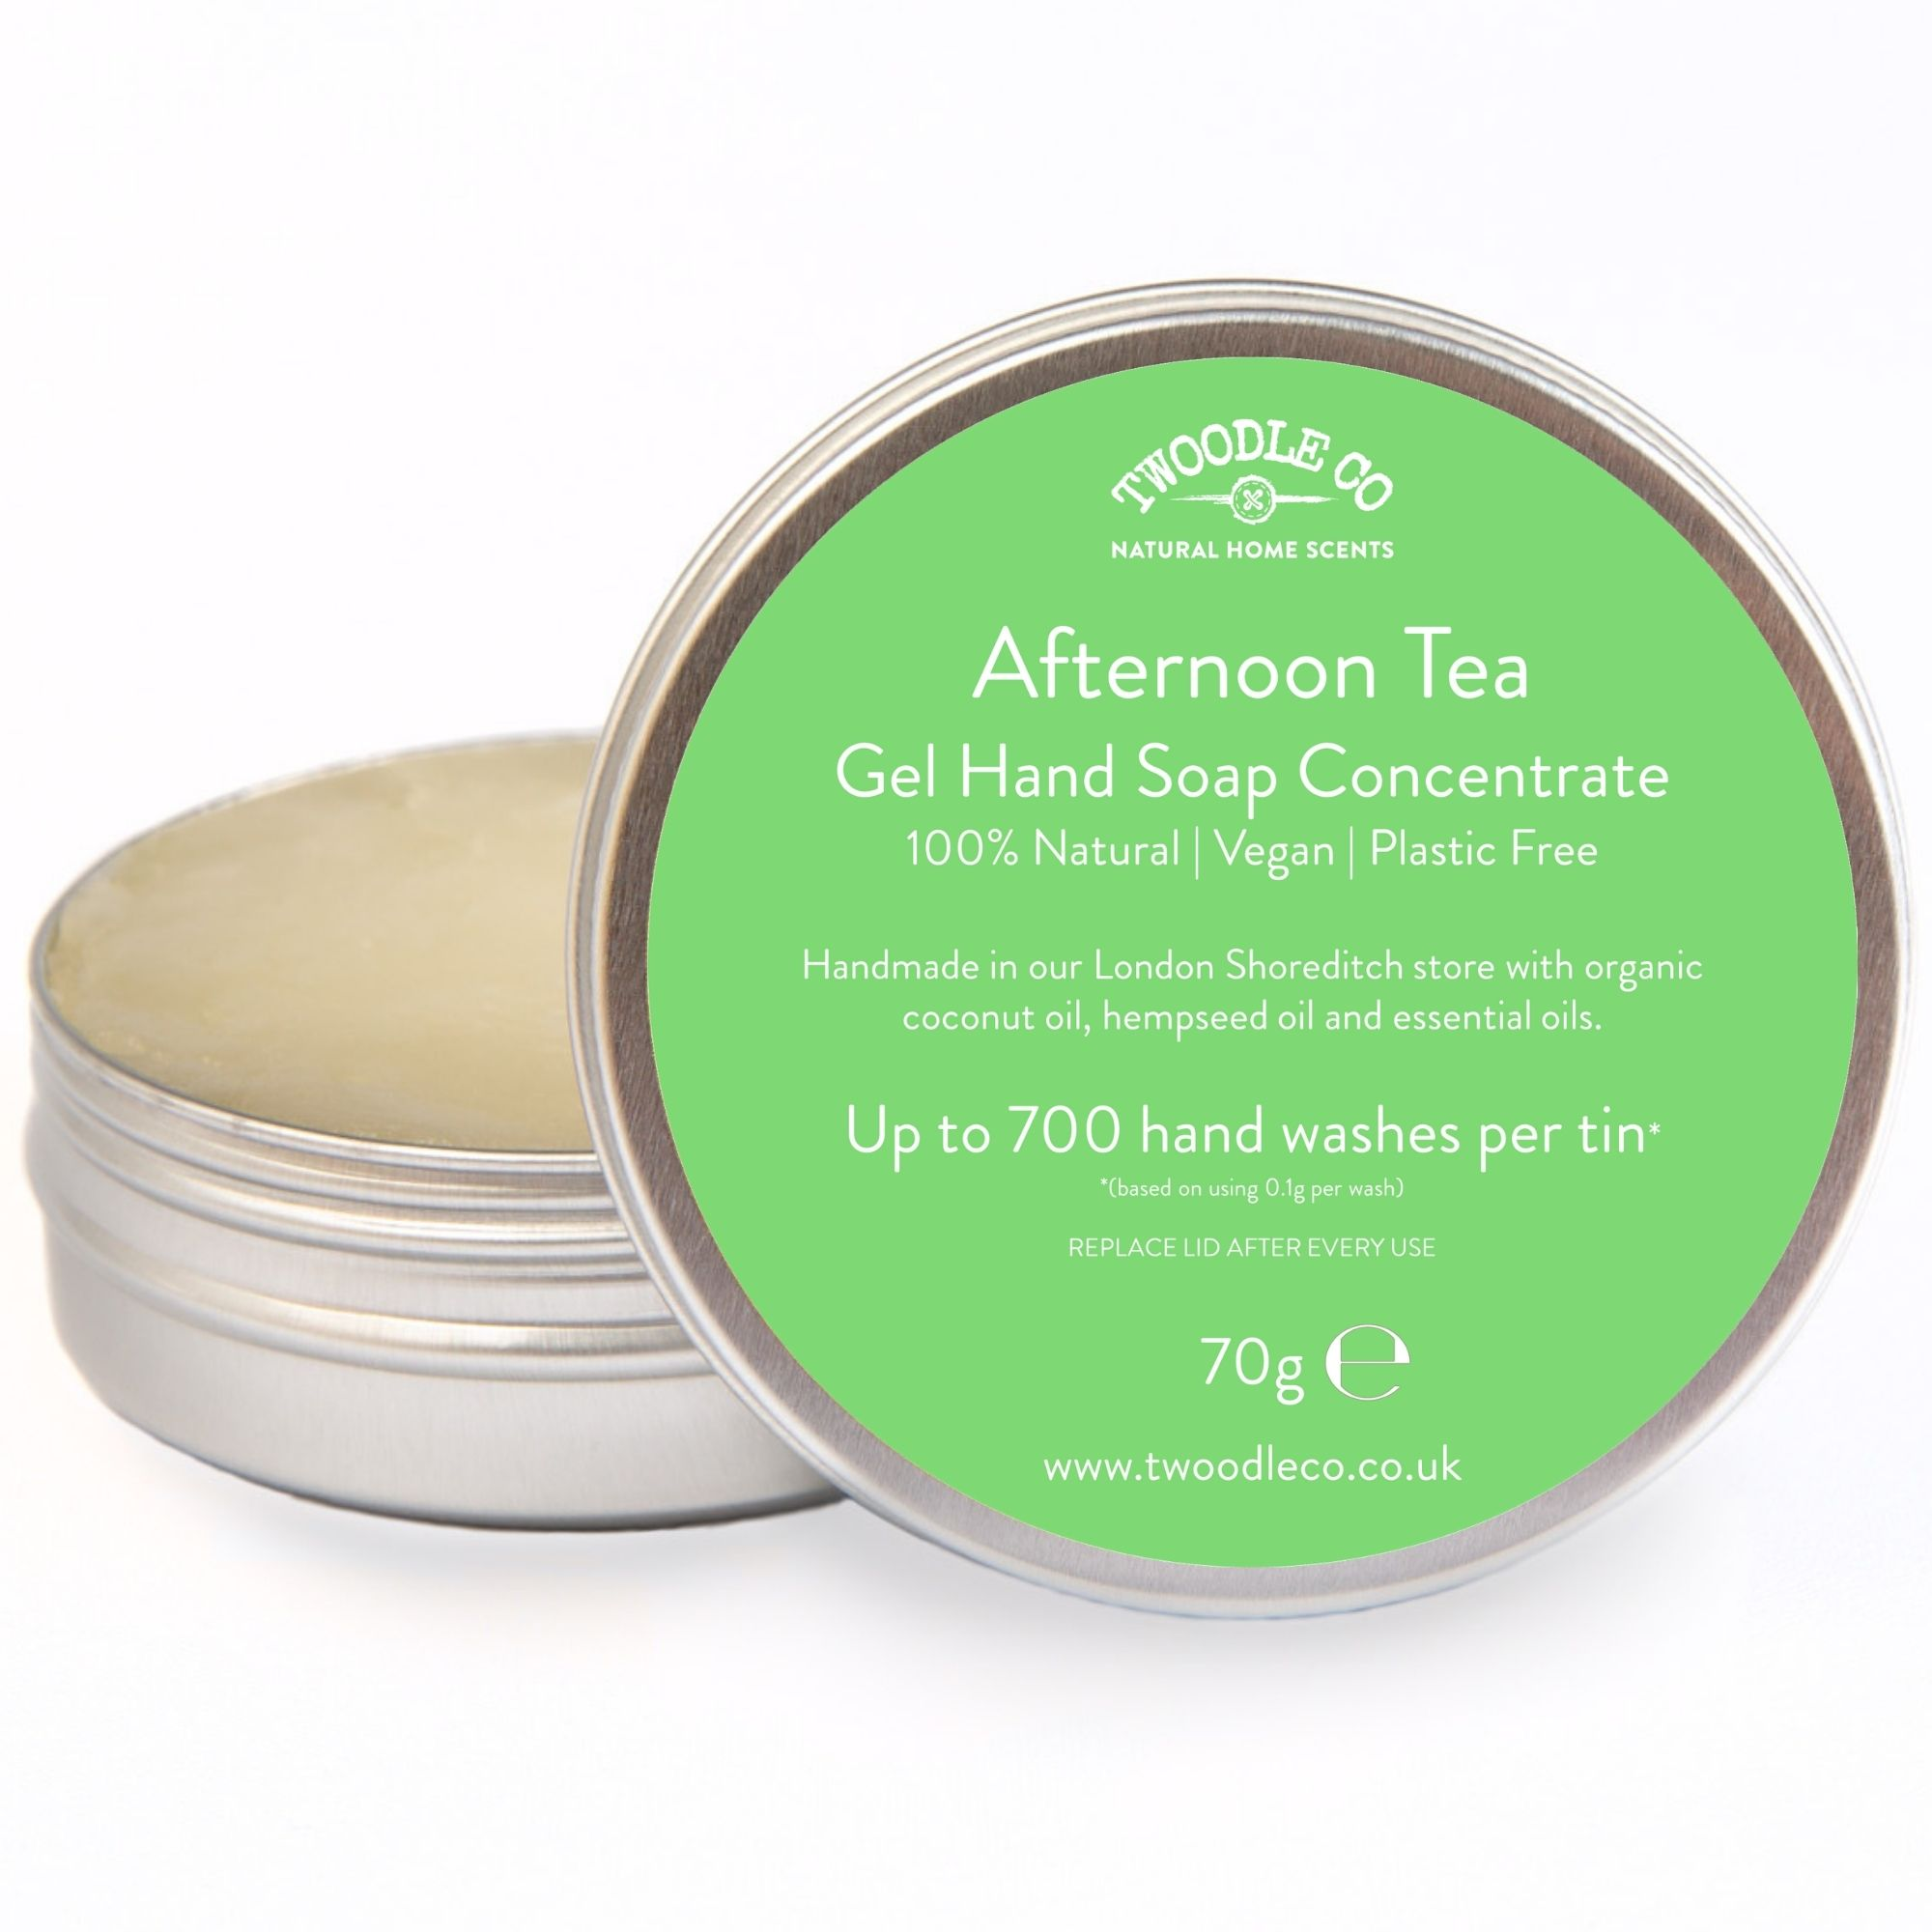 Afternoon Tea | Gel Hand Soap Concentrate